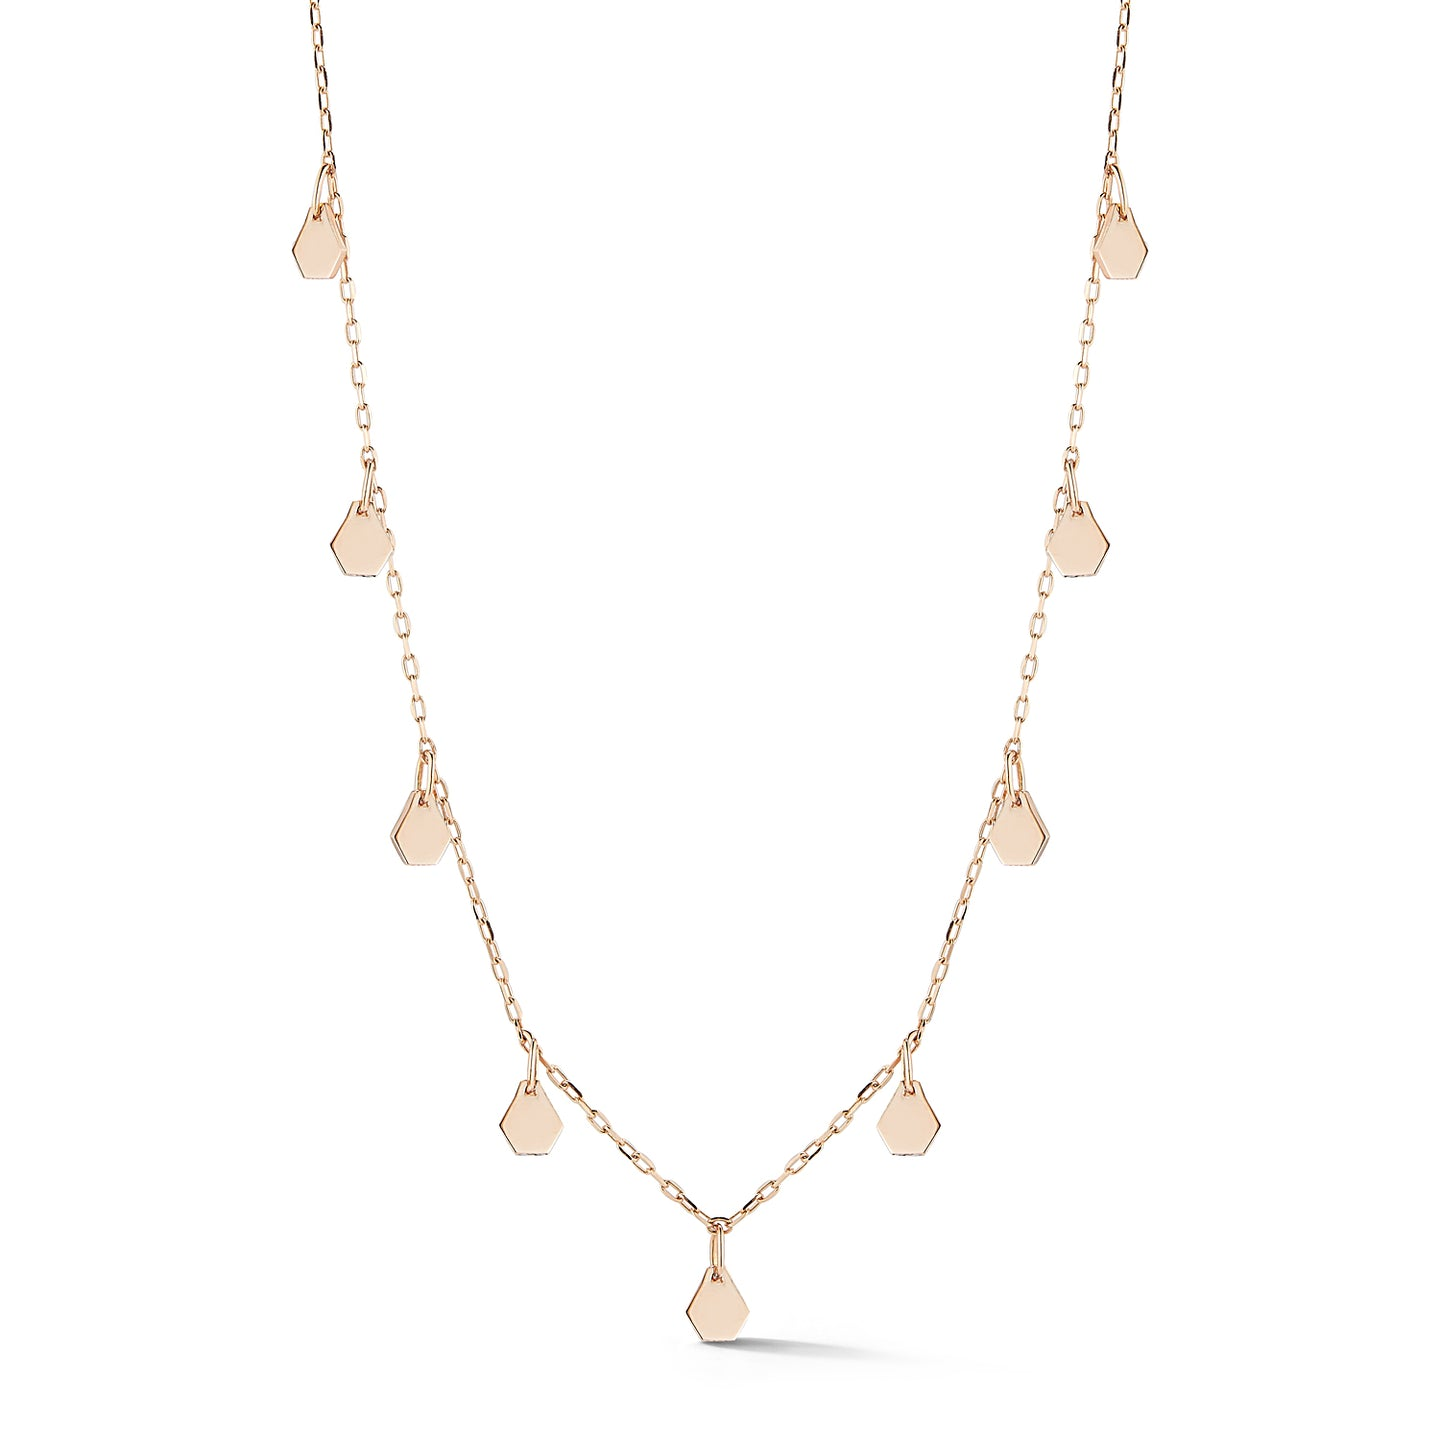 DORA 18K ROSE GOLD 9 HEXAGON MOTIF STATION NECKLACE